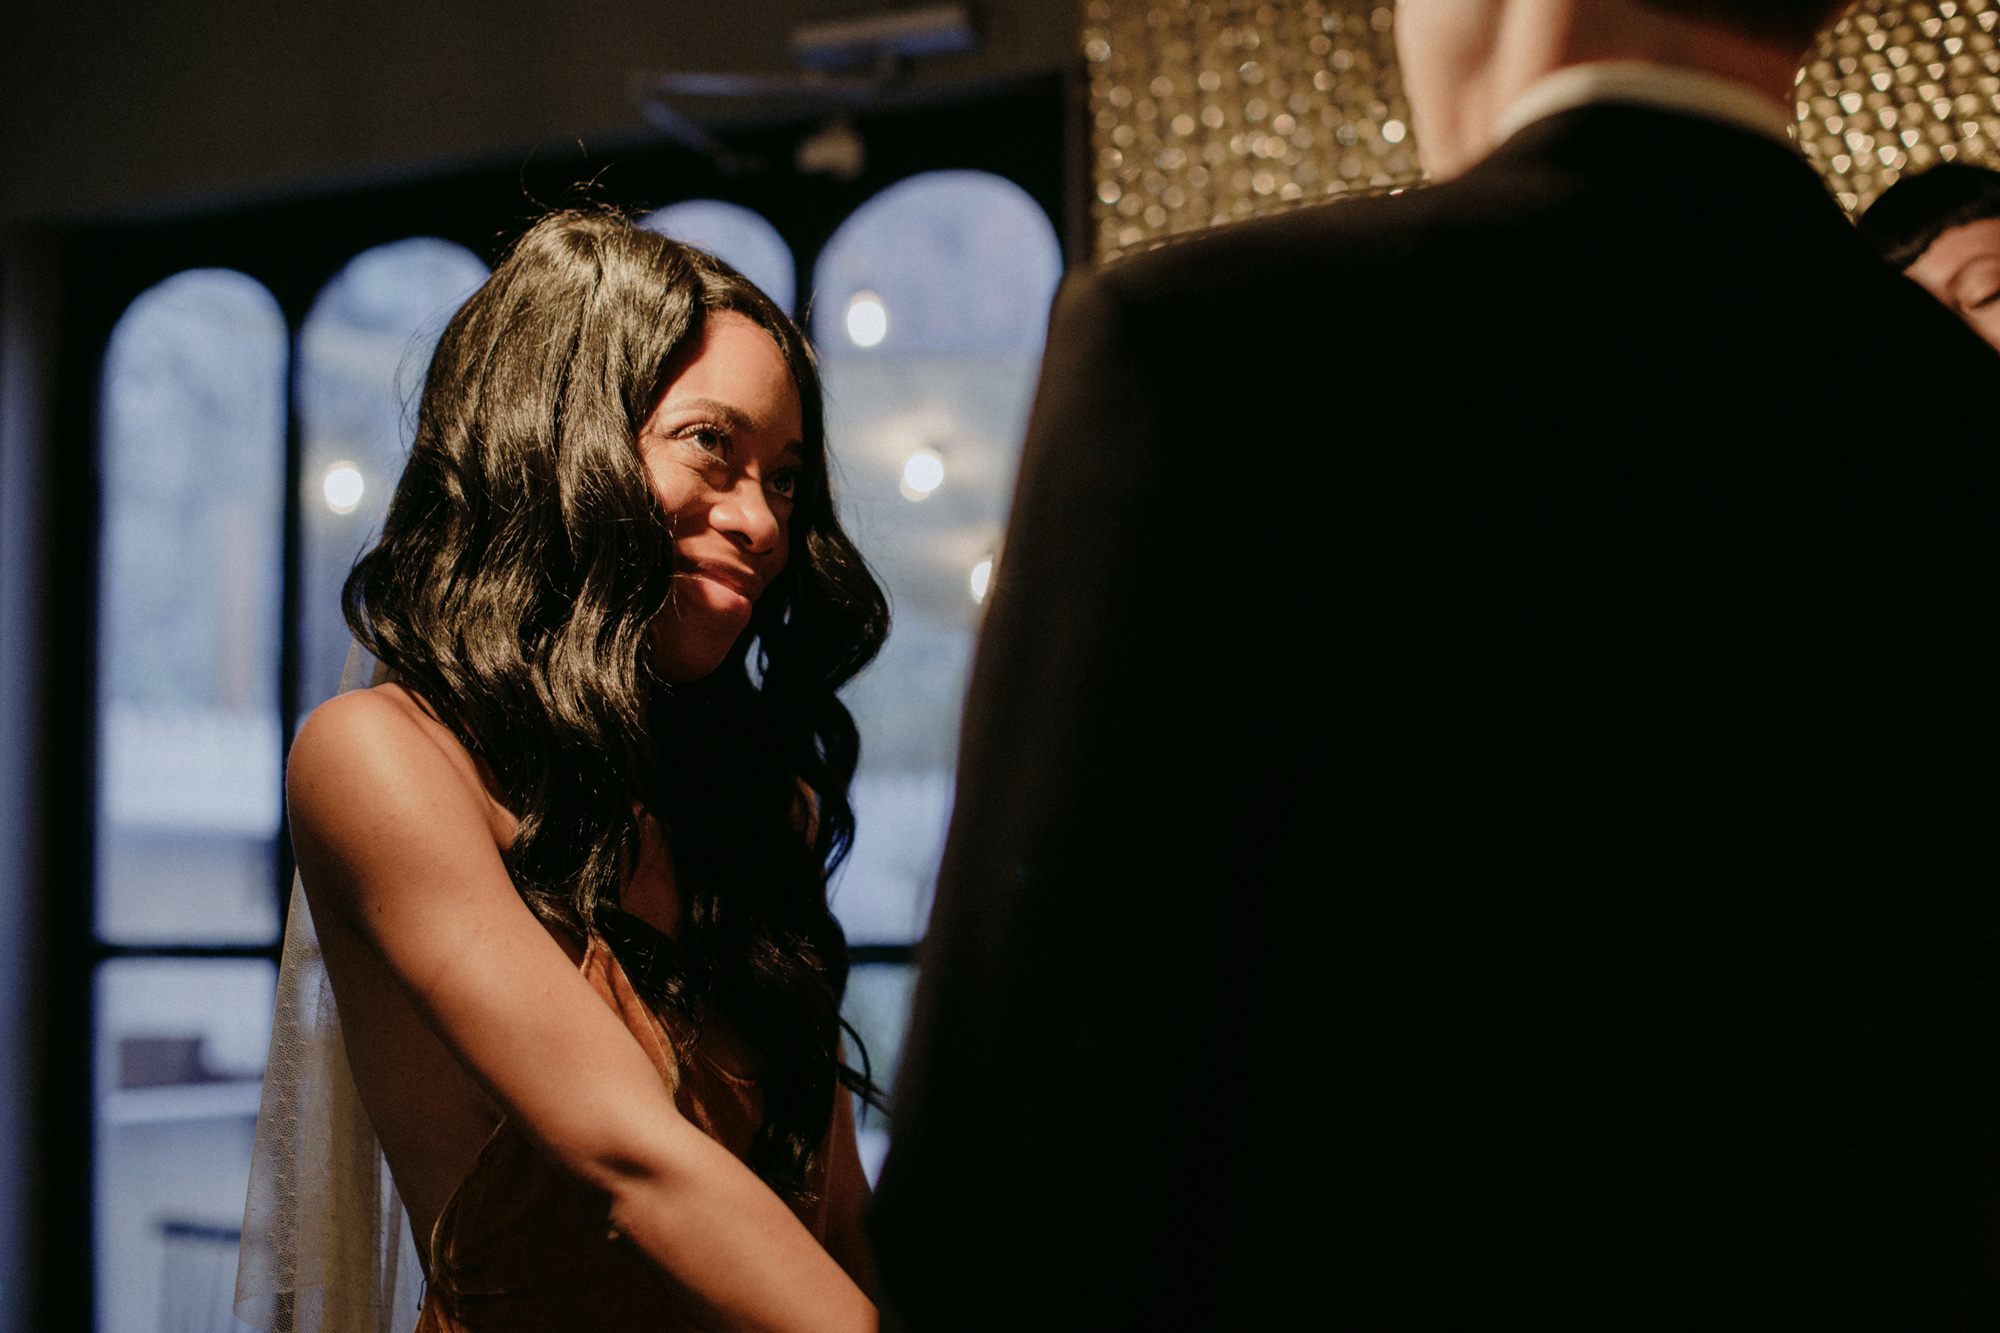 BROOKLYN_ELOPEMENT_SAMMBLAKE_NDE_476.jpg